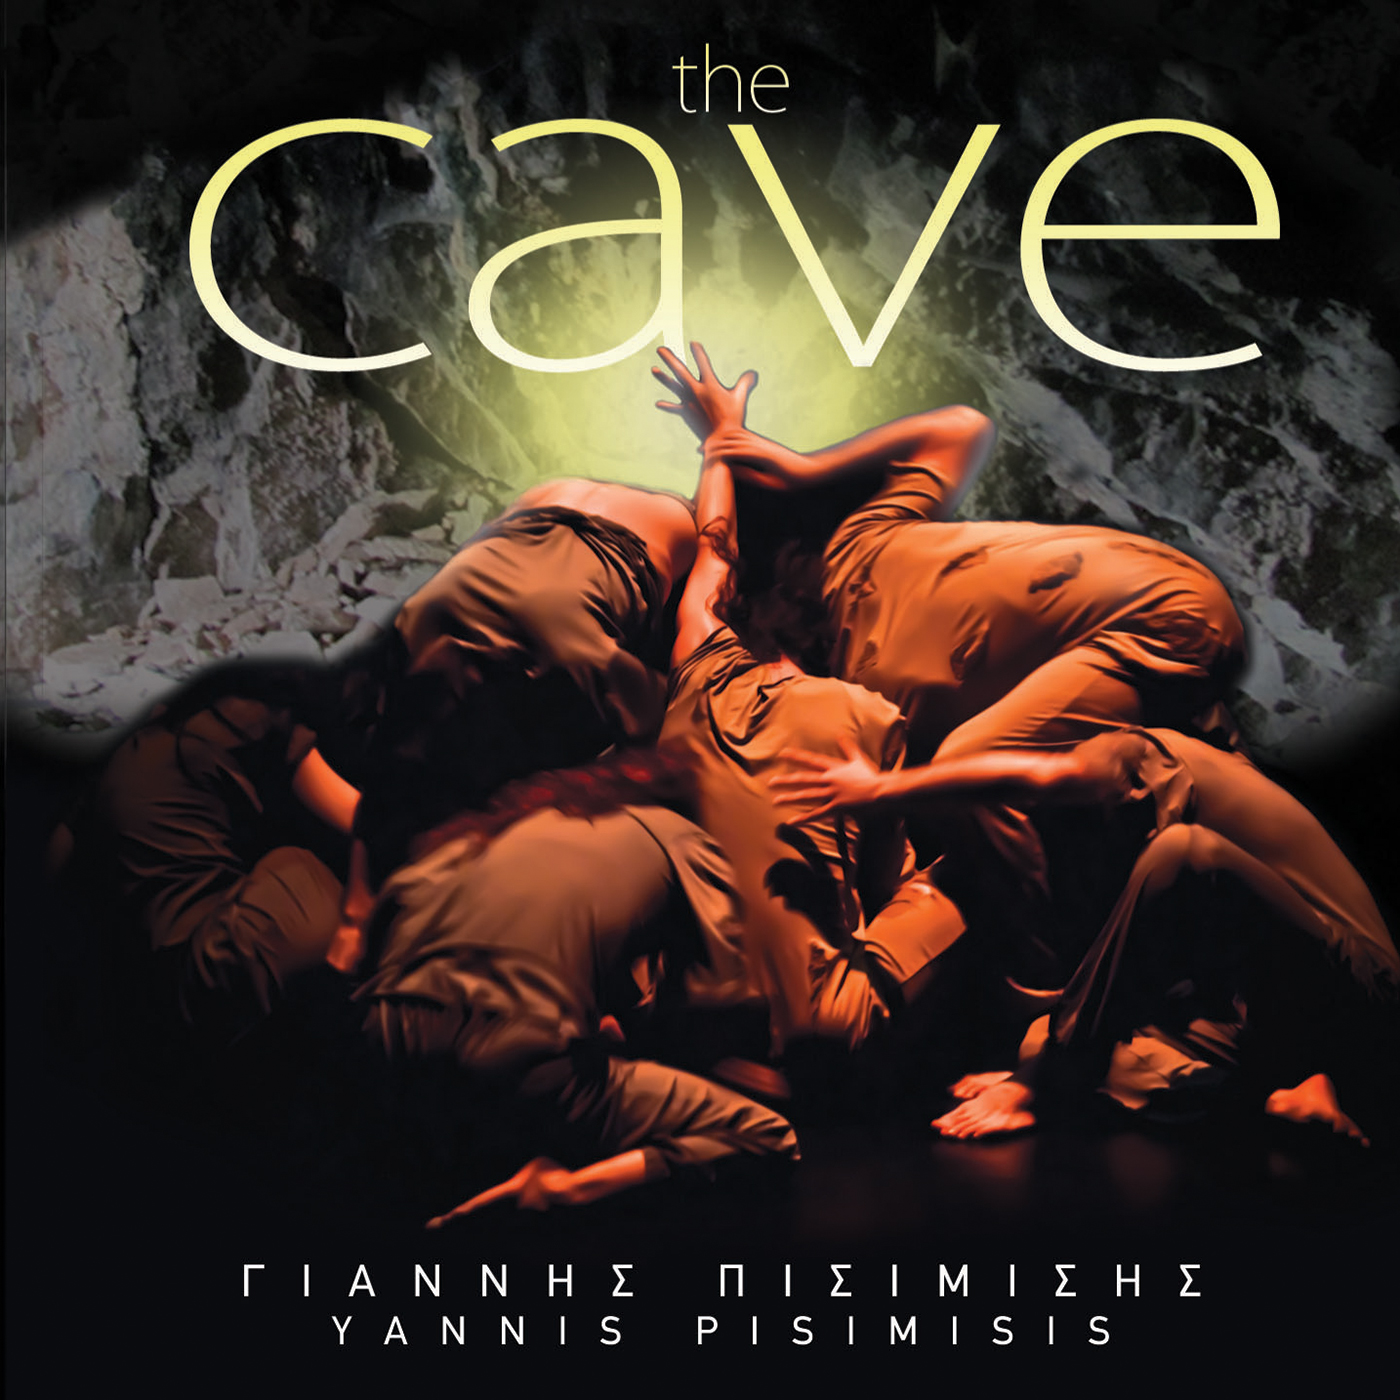 cd the cave